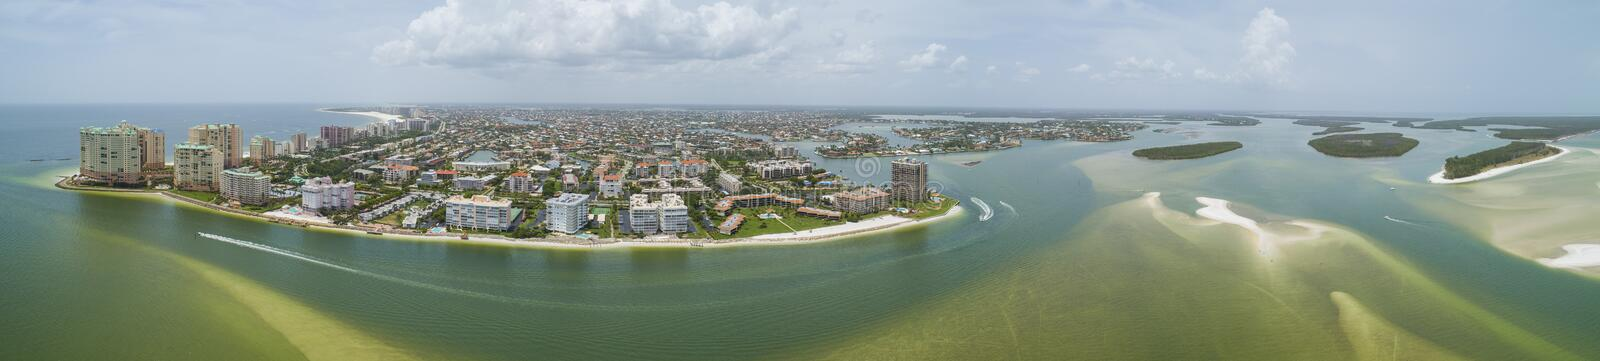 Aerial panorama Marco Island Florida royalty free stock photo